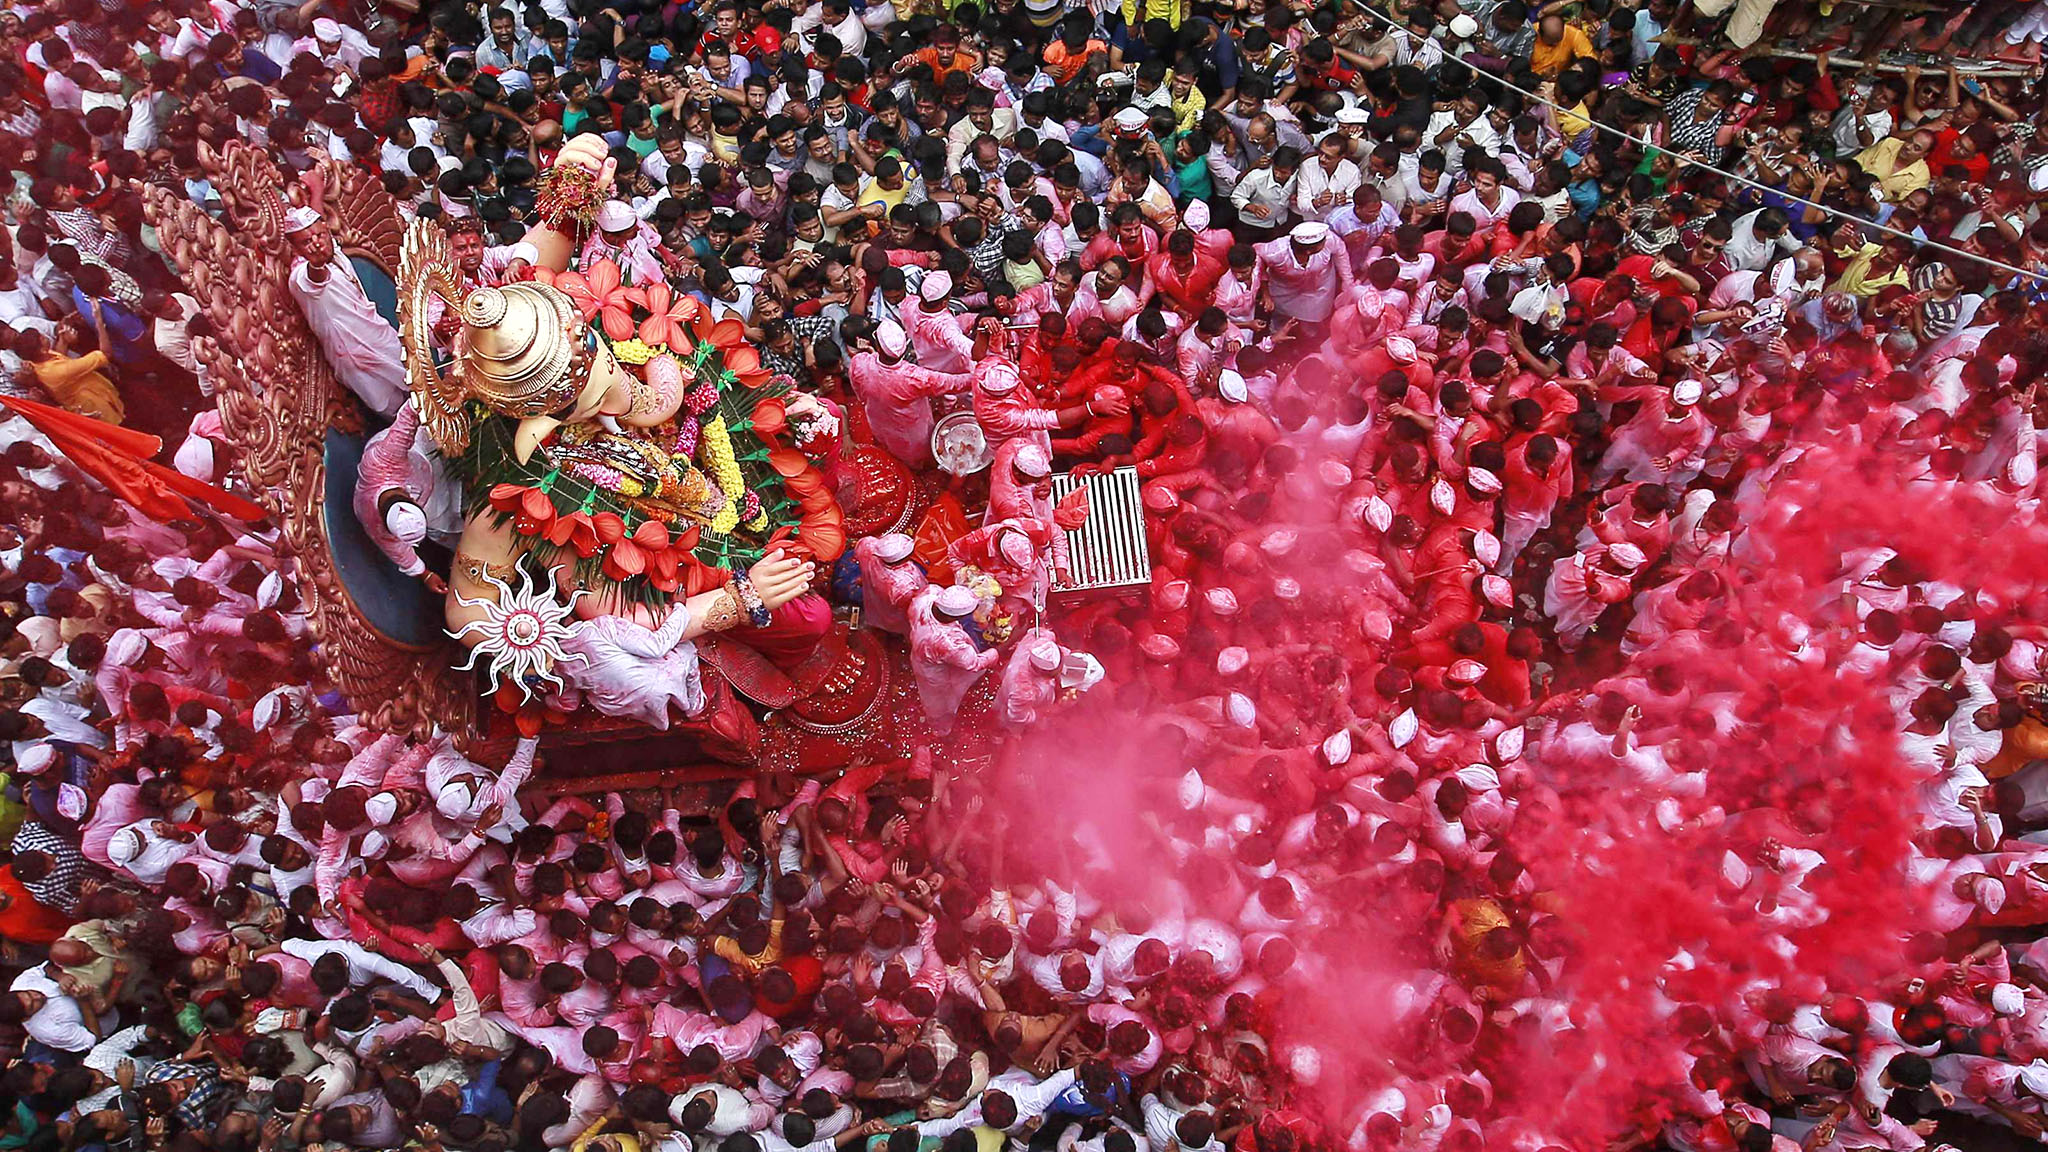 Devotees carry an idol of Hindu elephant god Ganesh, the deity of prosperity, during a procession through the streets before immersing it in the waters of the Arabian Sea on the last day of the Ganesh Chaturthi festival in Mumbai